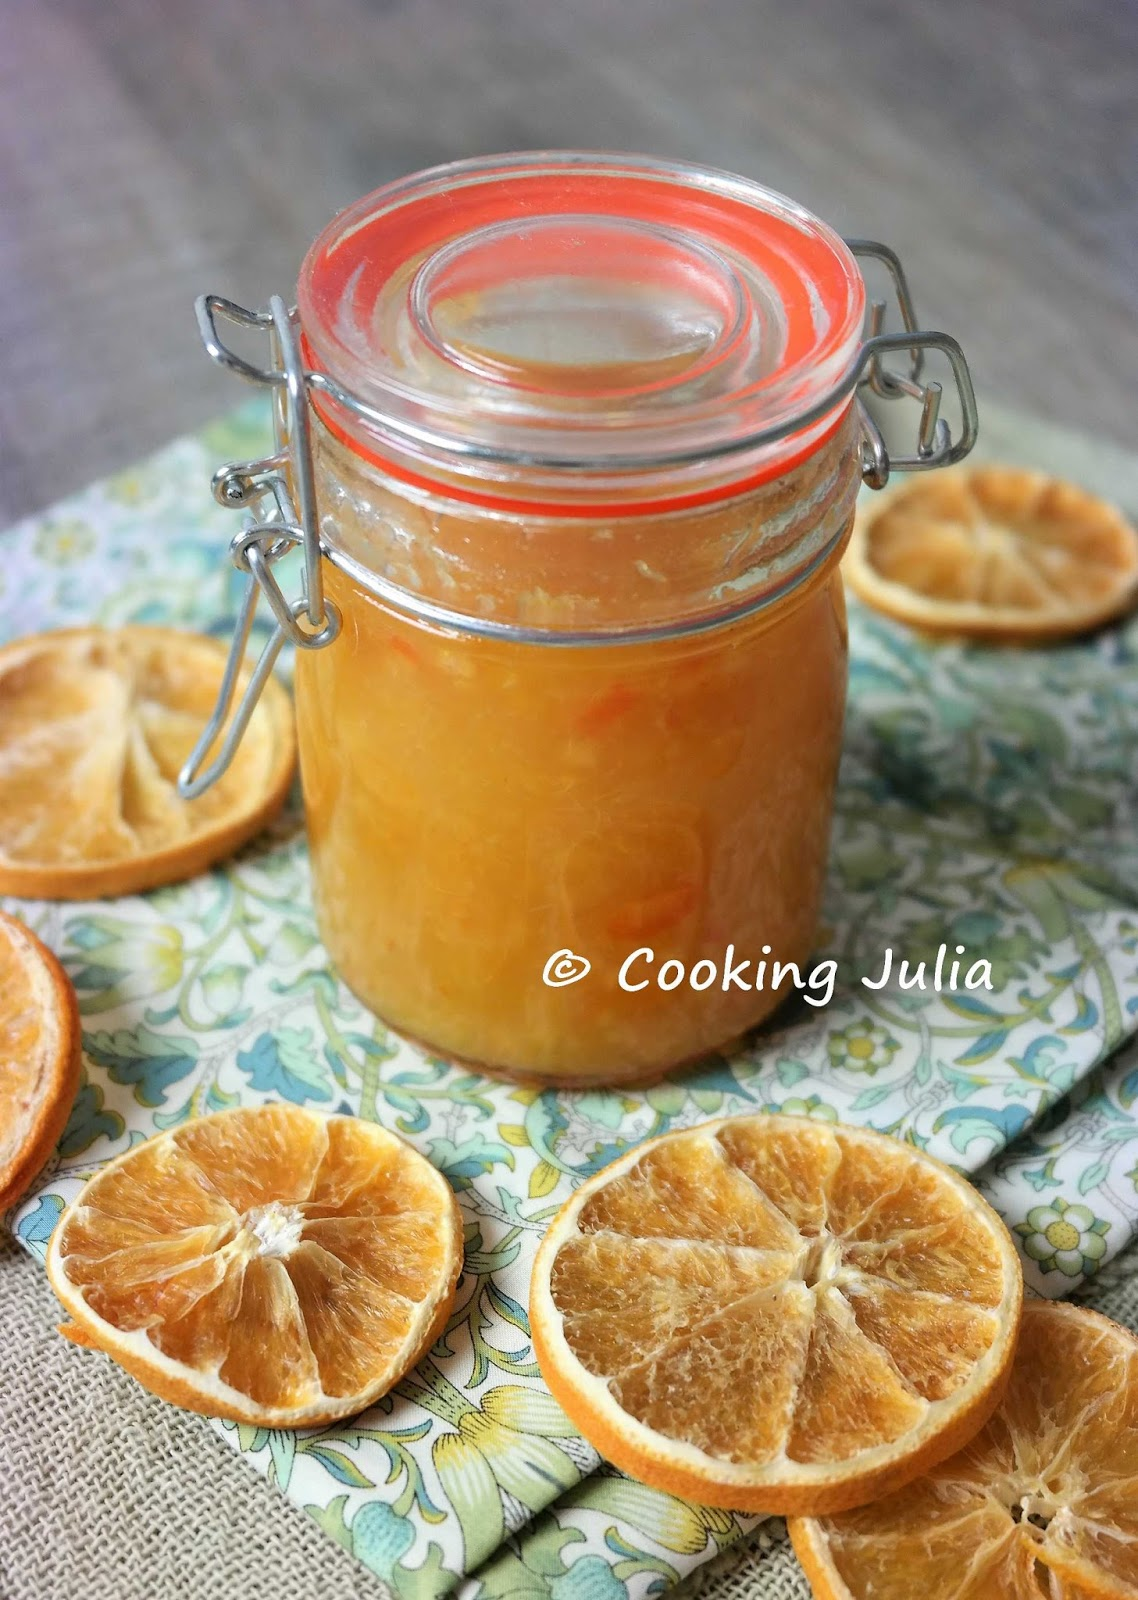 cooking julia marmelade d oranges. Black Bedroom Furniture Sets. Home Design Ideas